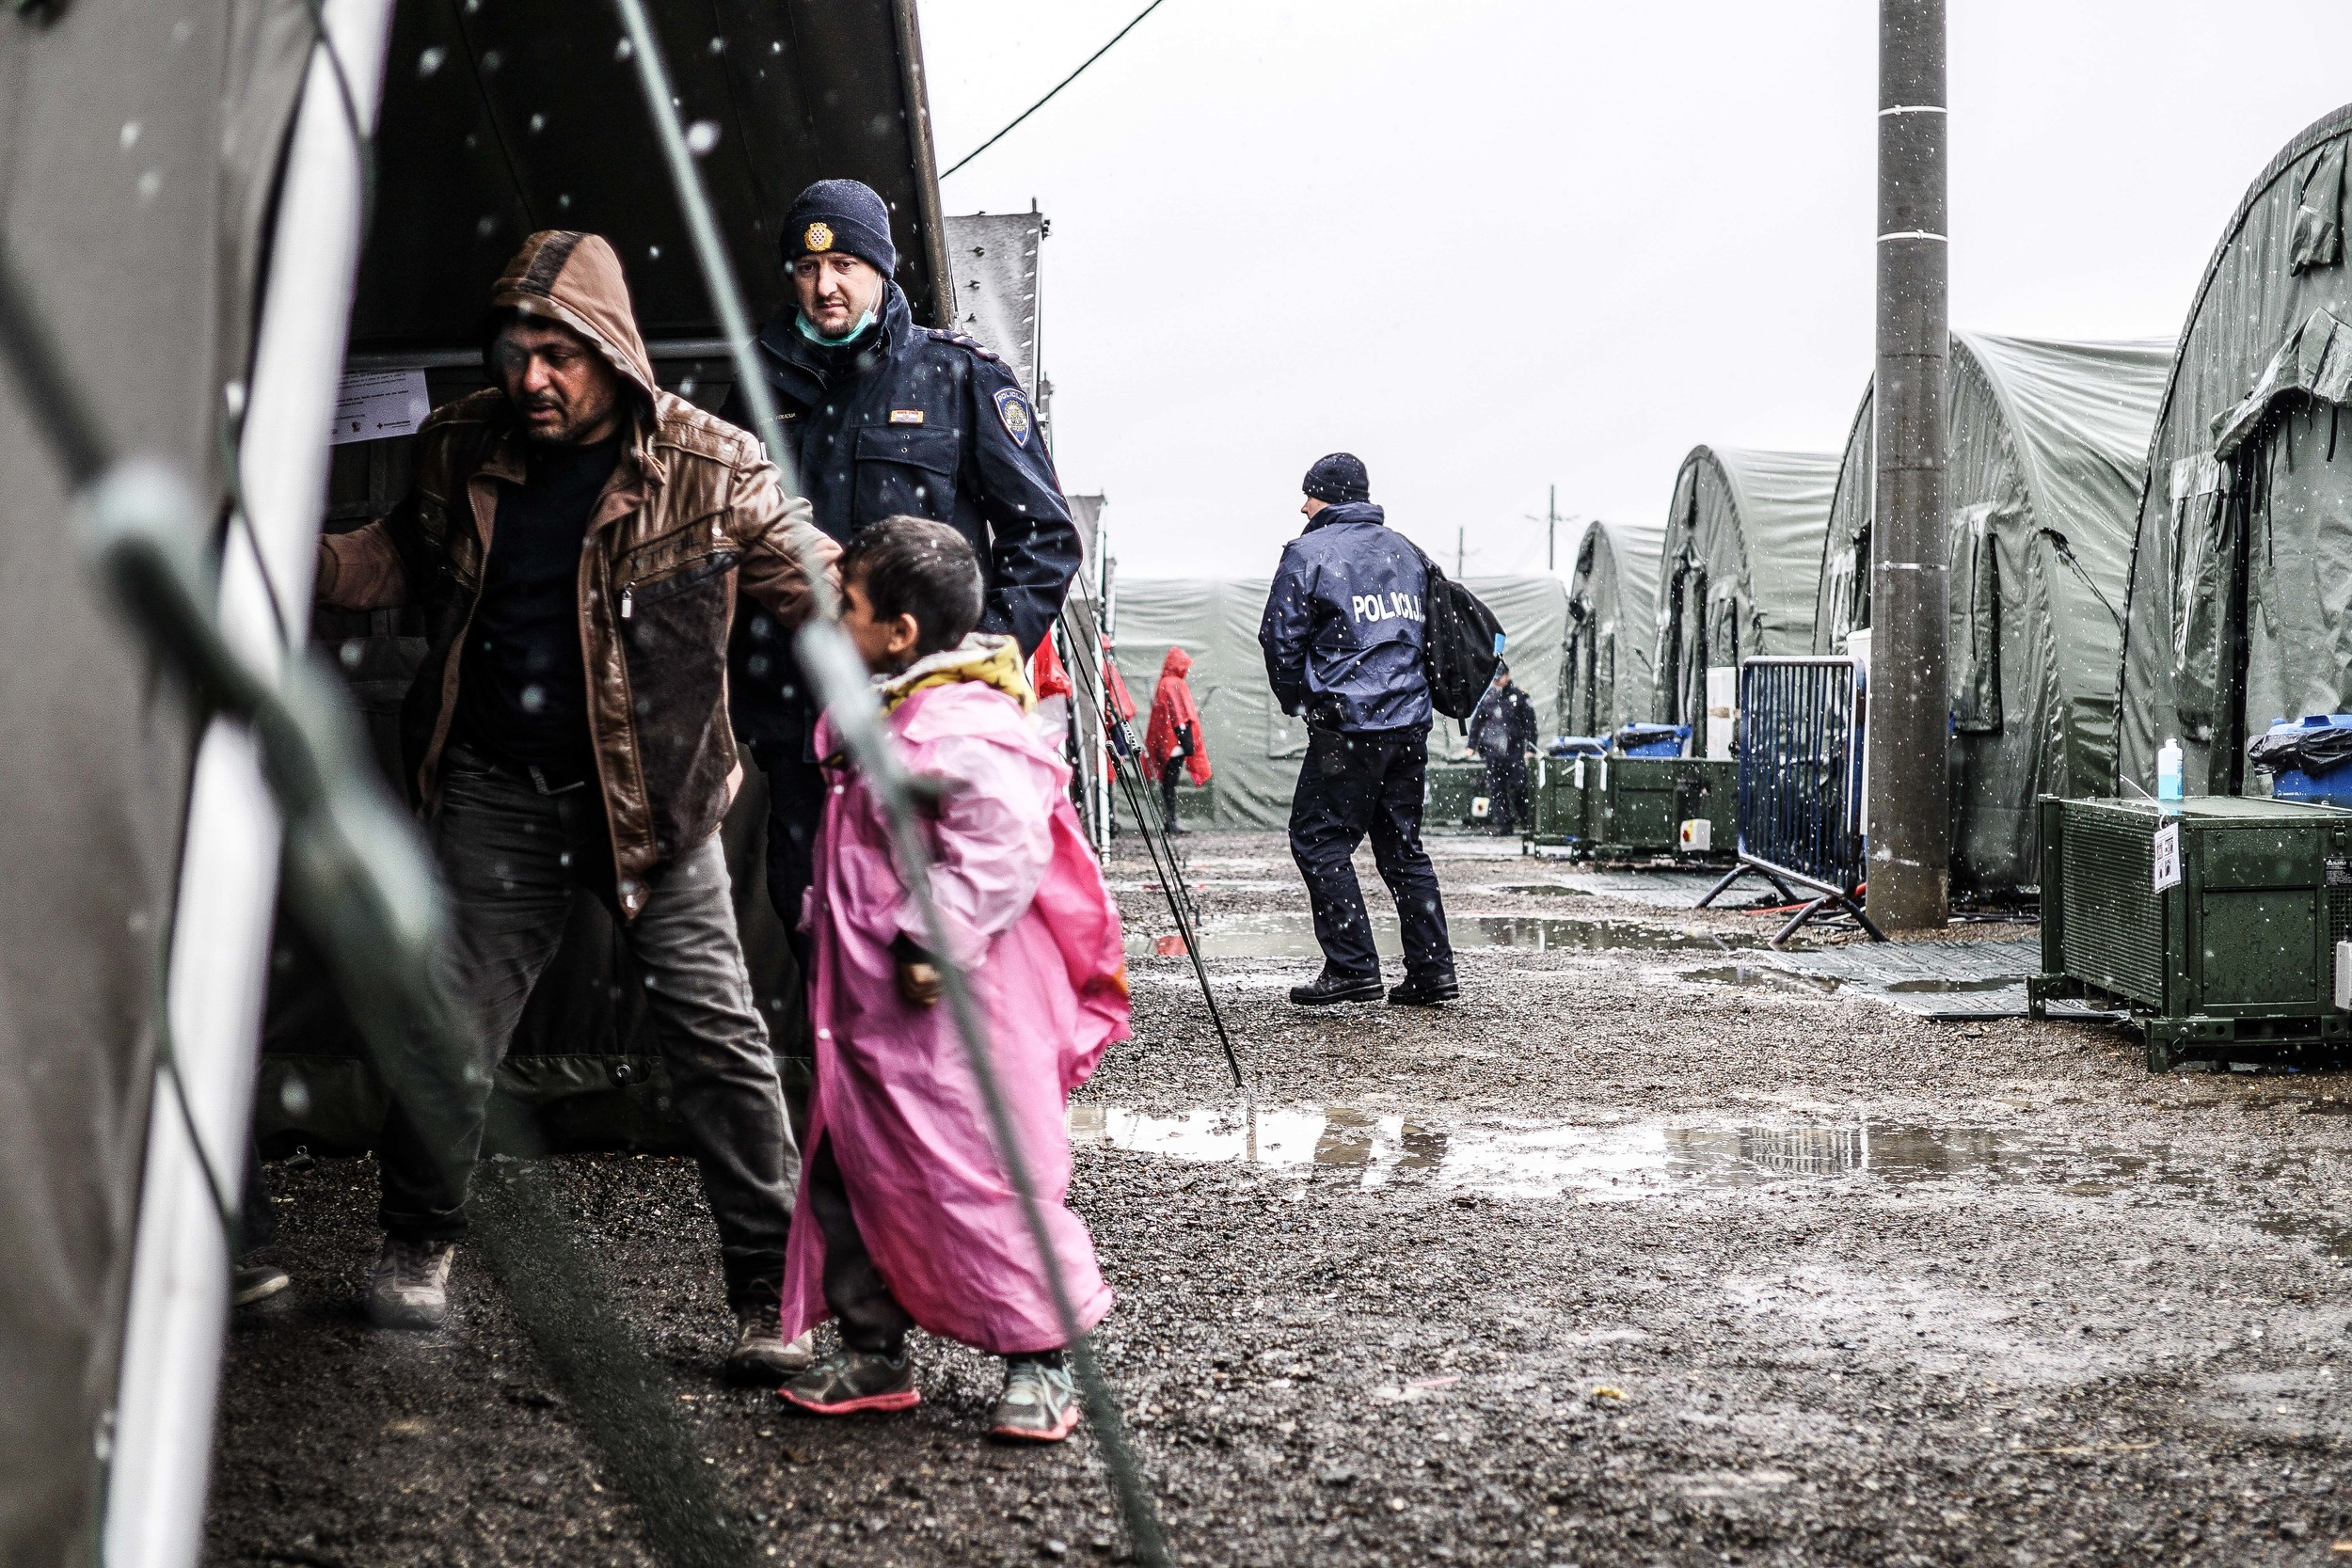 Syrian Refugee Crisis Croatia Slavonski Brod Winter Refugee Camp November 2015 25.jpg